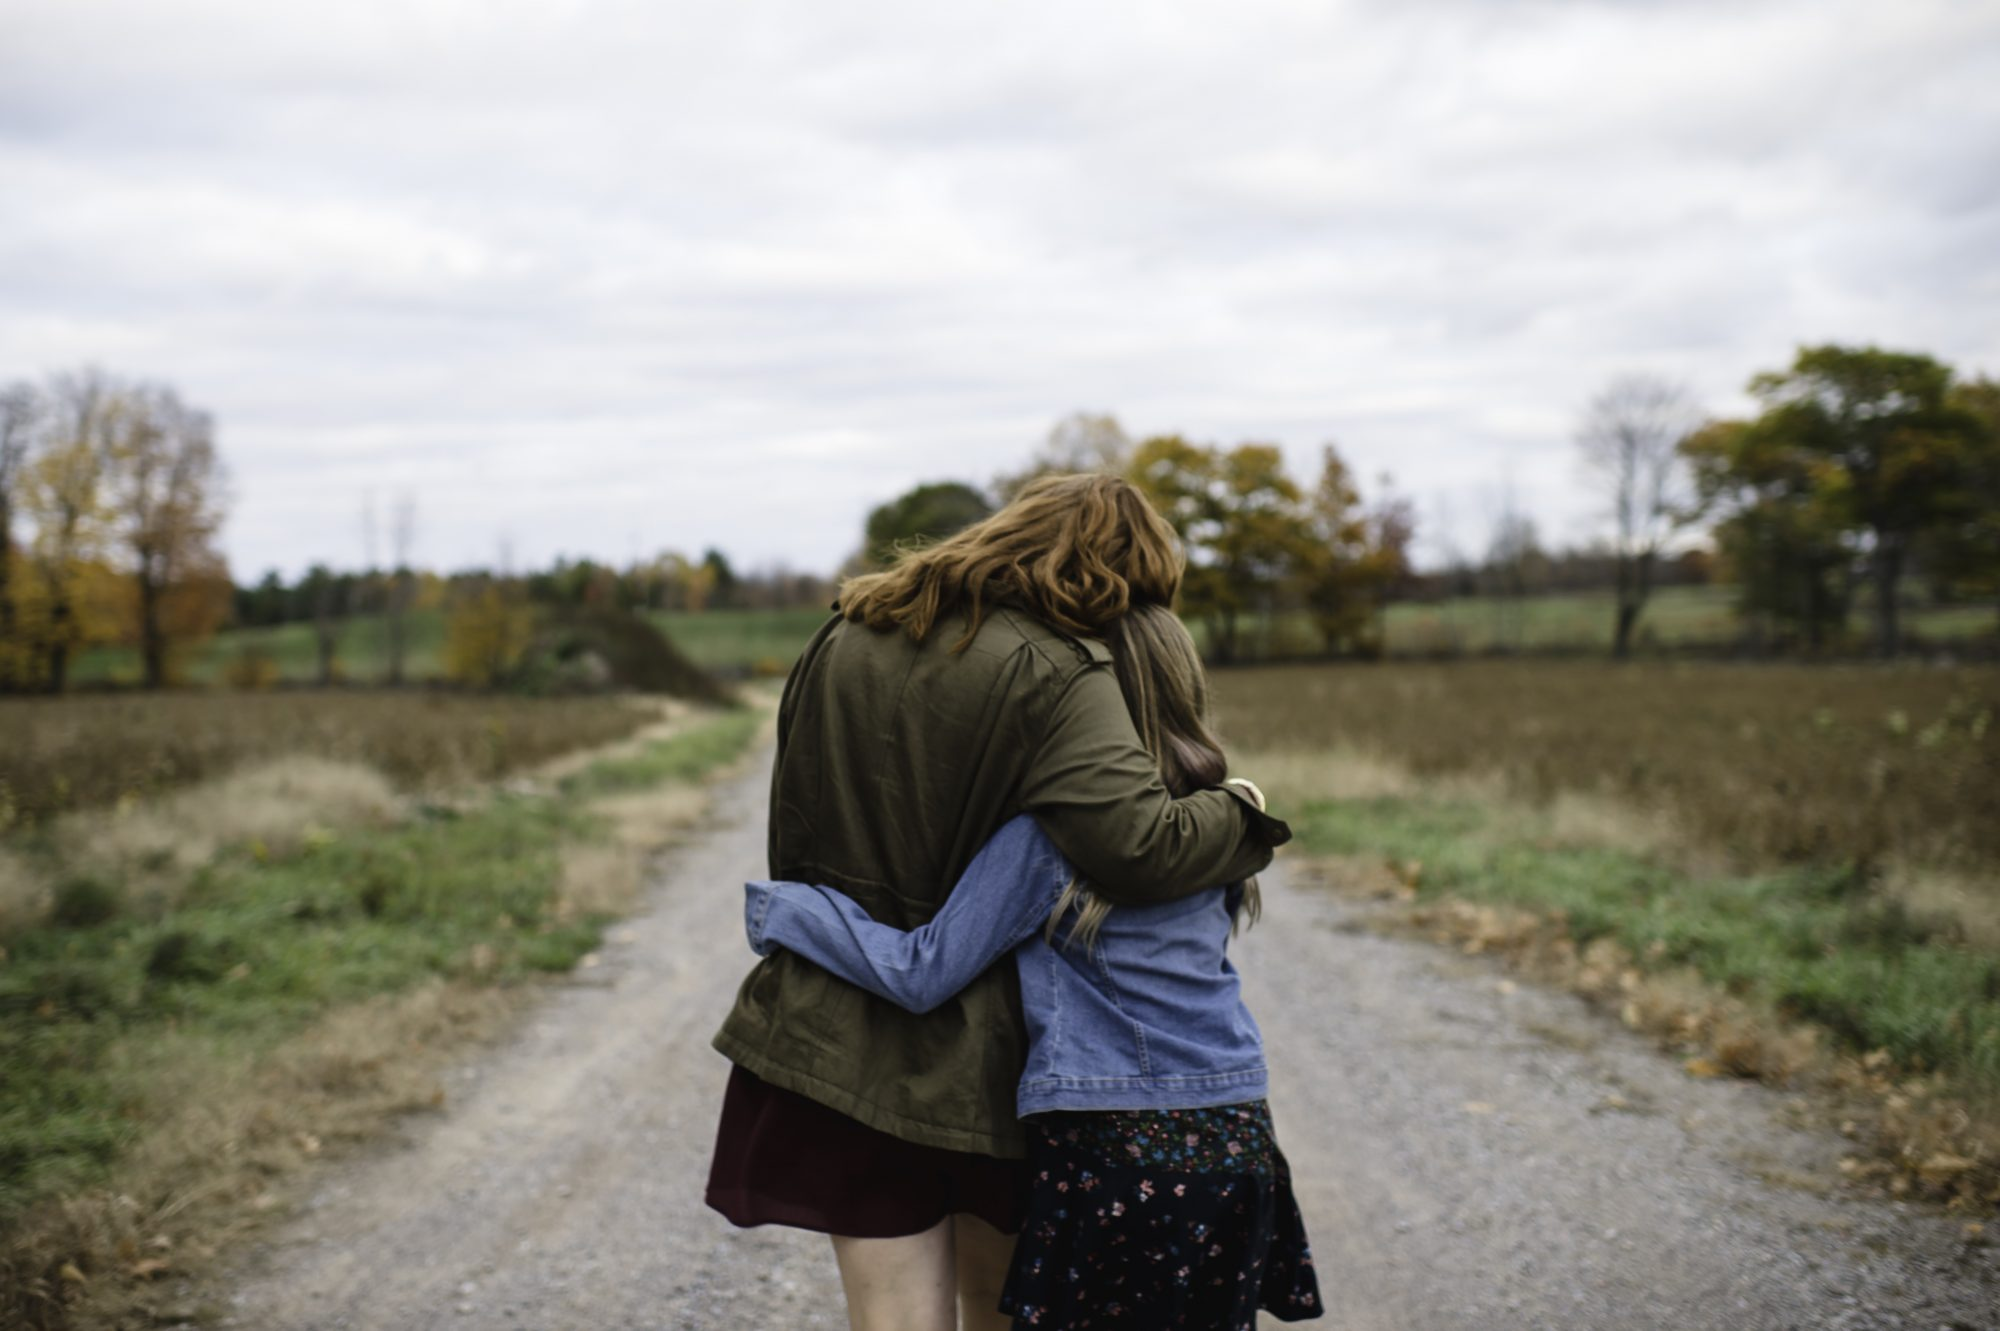 Mother and daughter hugging on dirt road, Lakefield, Ontario, Canada